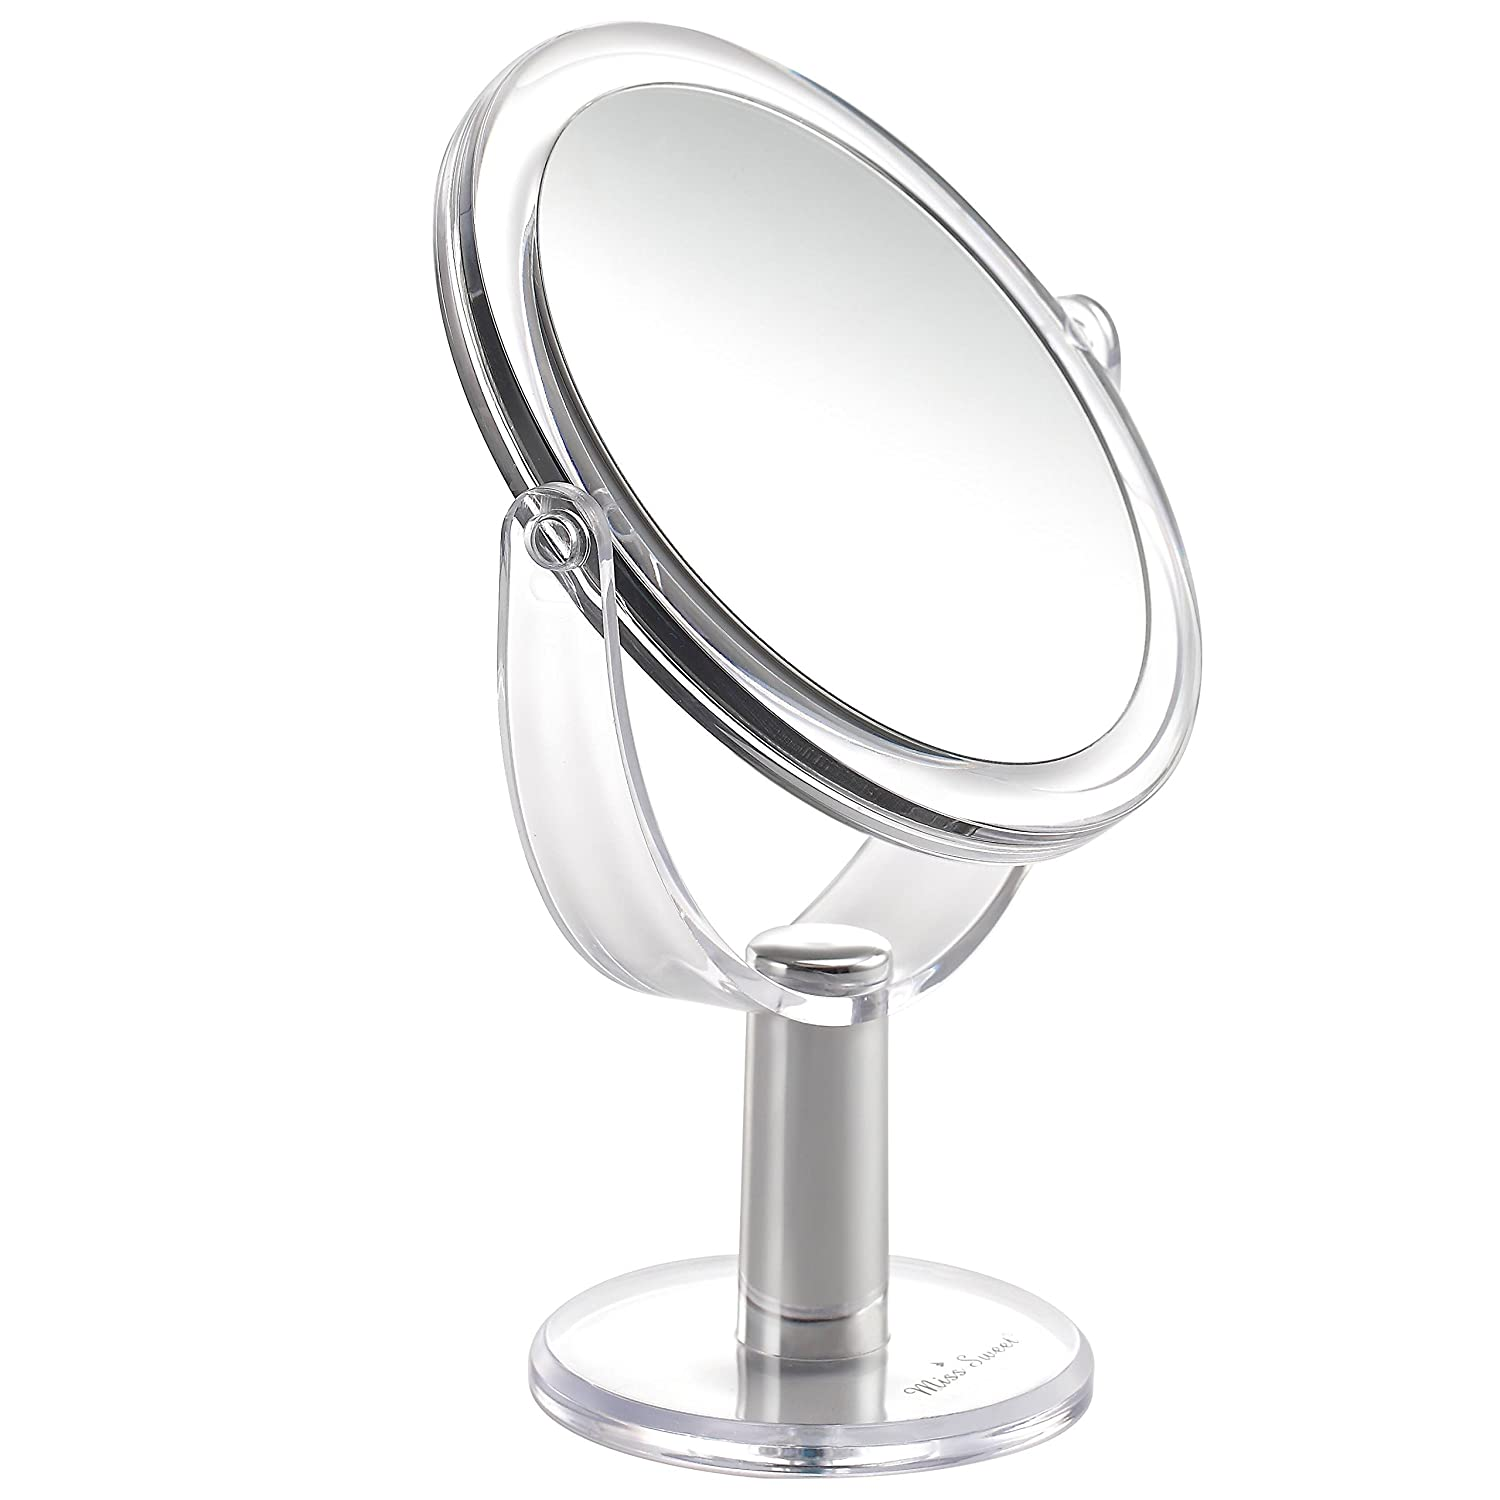 Miss Sweet Folding Hand Held Mirror with 7X & 1X Magnification, 6.16.1inch (7X/1X)